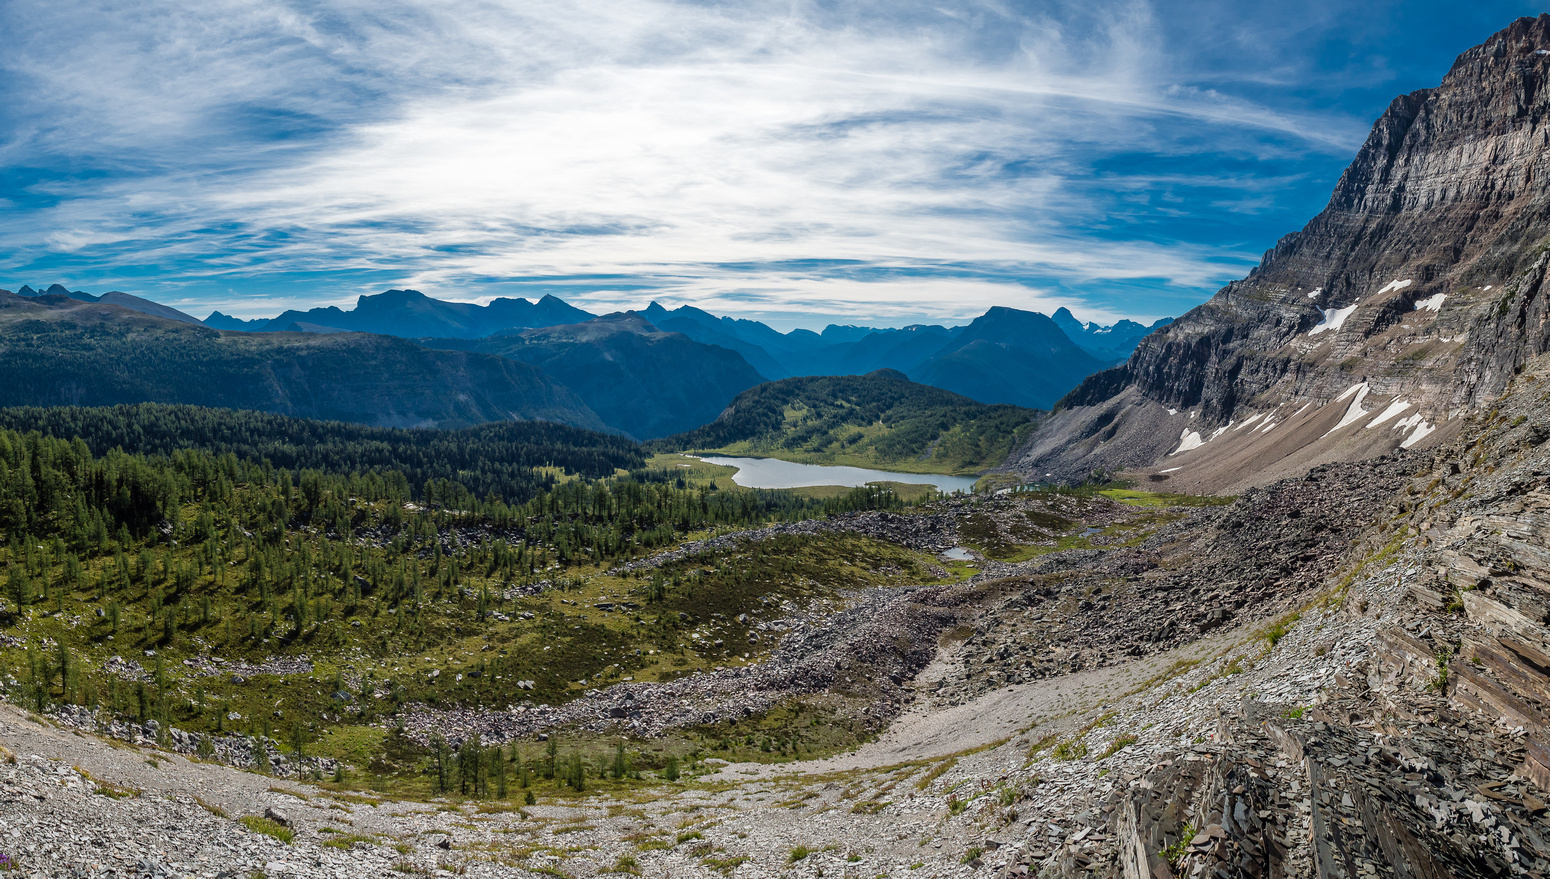 Looking along the impressive east face of The Monarch (R) towards Eohippus Lake and the Mount Assiniboine area.